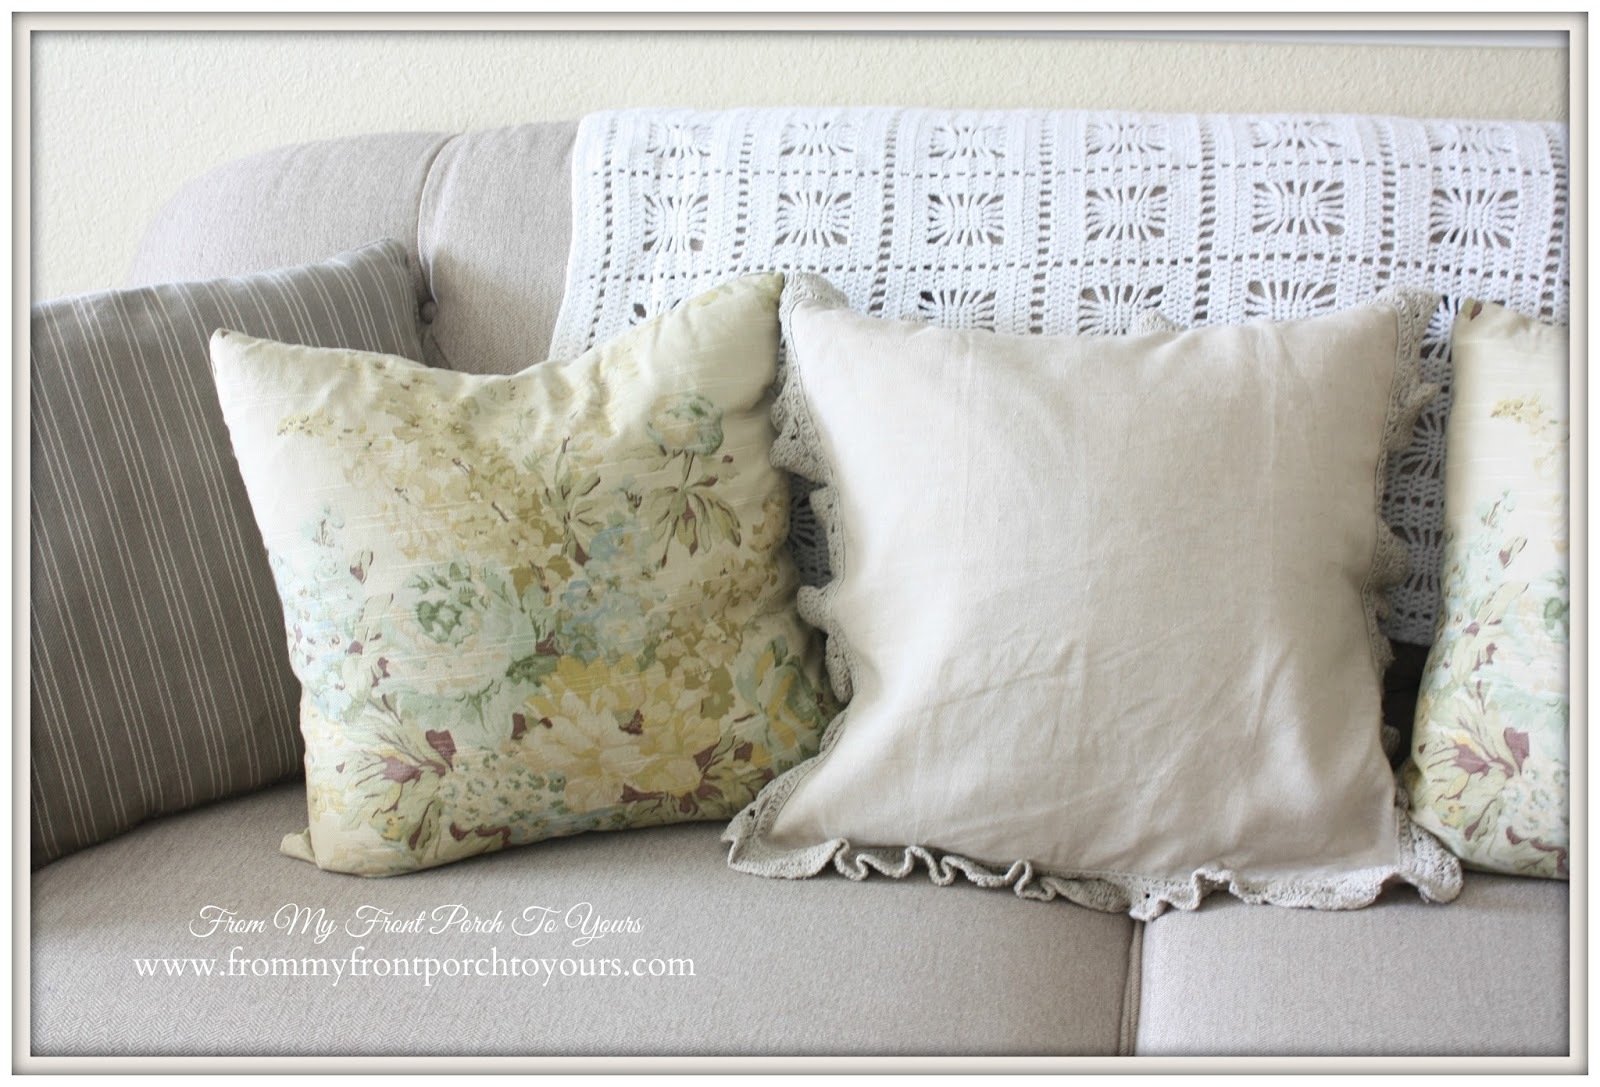 French Laundry vintage like floral pillows along with a pillow made from a napkin.- From My Front Porch To Yours